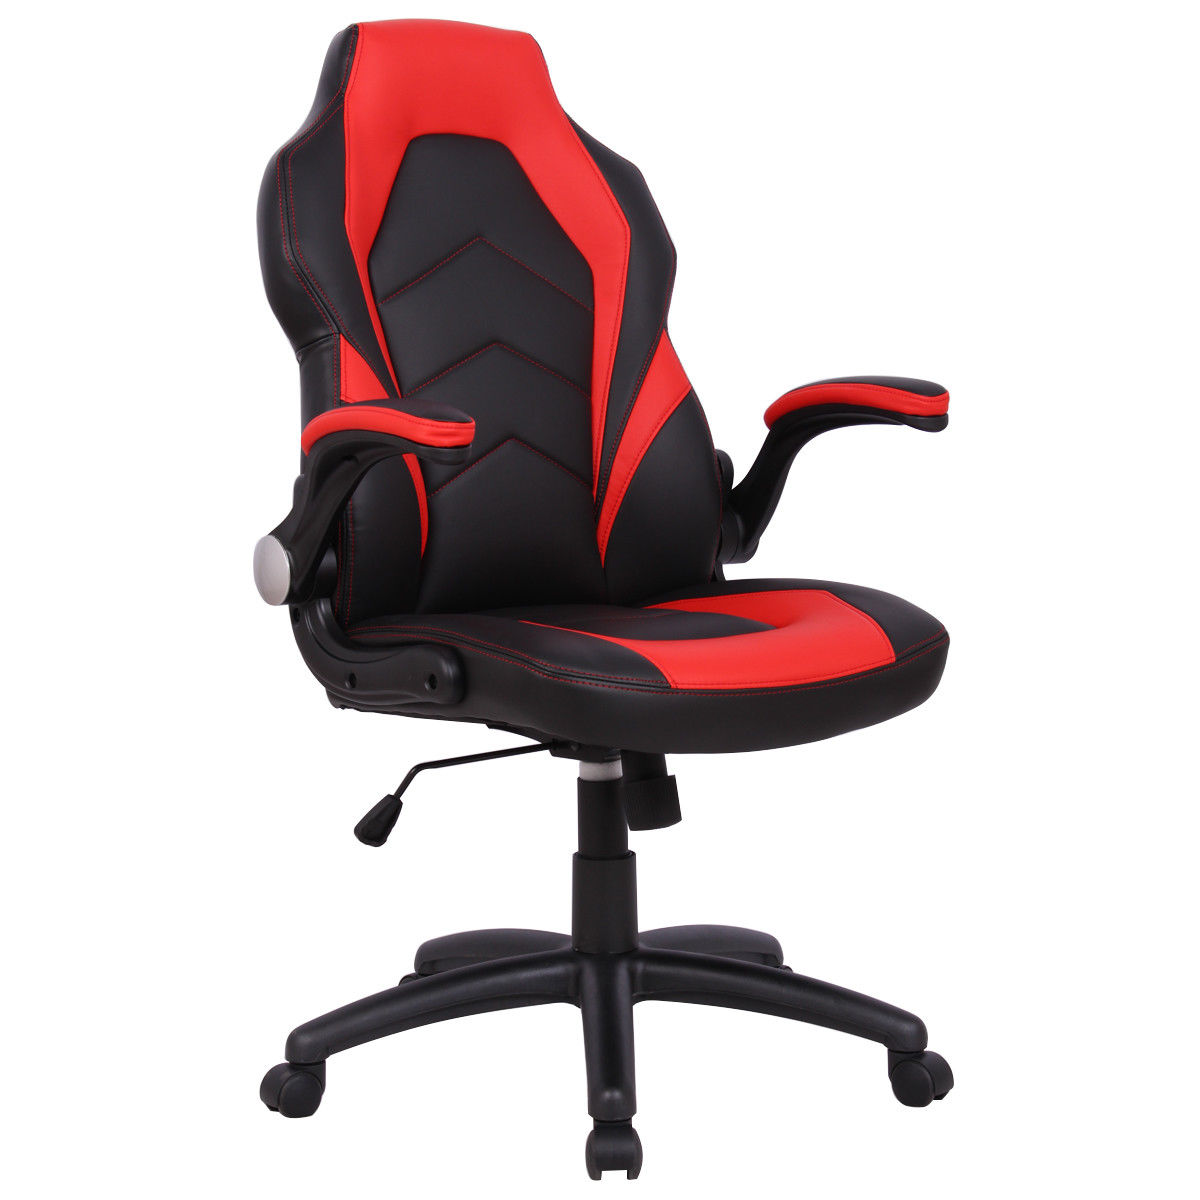 Gymax Ergonomic Office Chair PU Race Car Style Bucket Seat Gaming Desk Task Red New